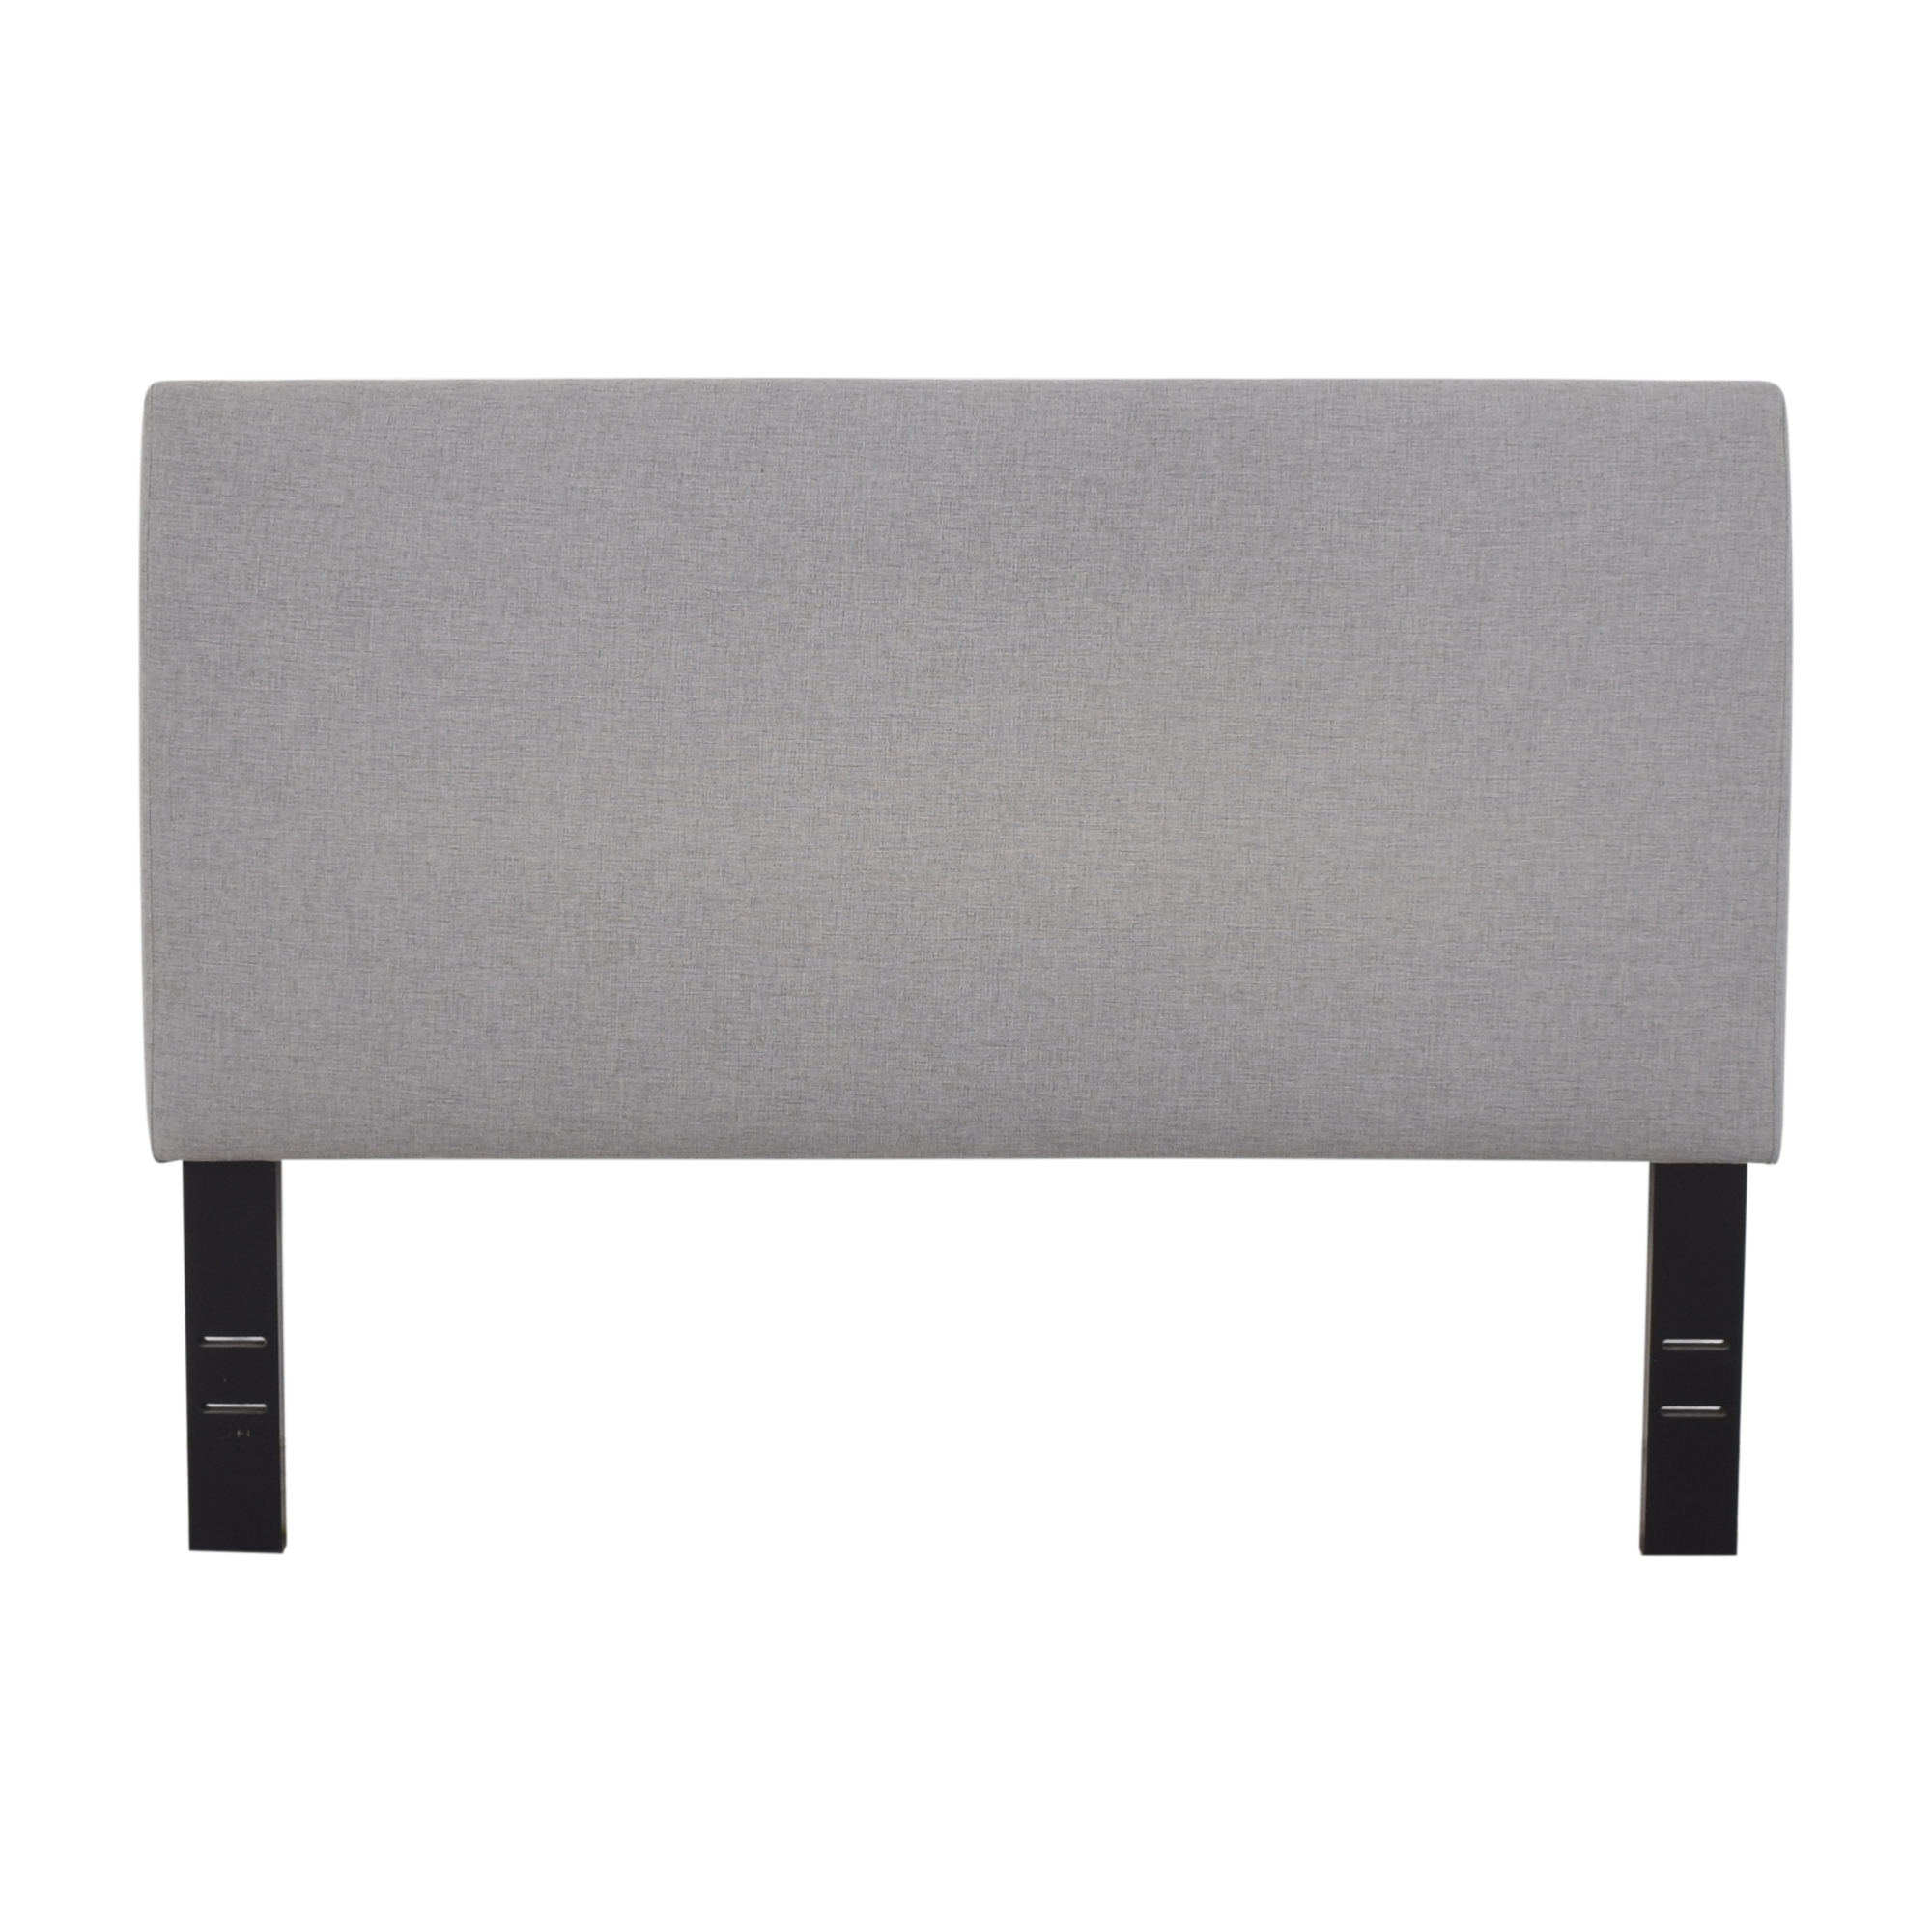 West Elm West Elm Andes Full Headboard nj